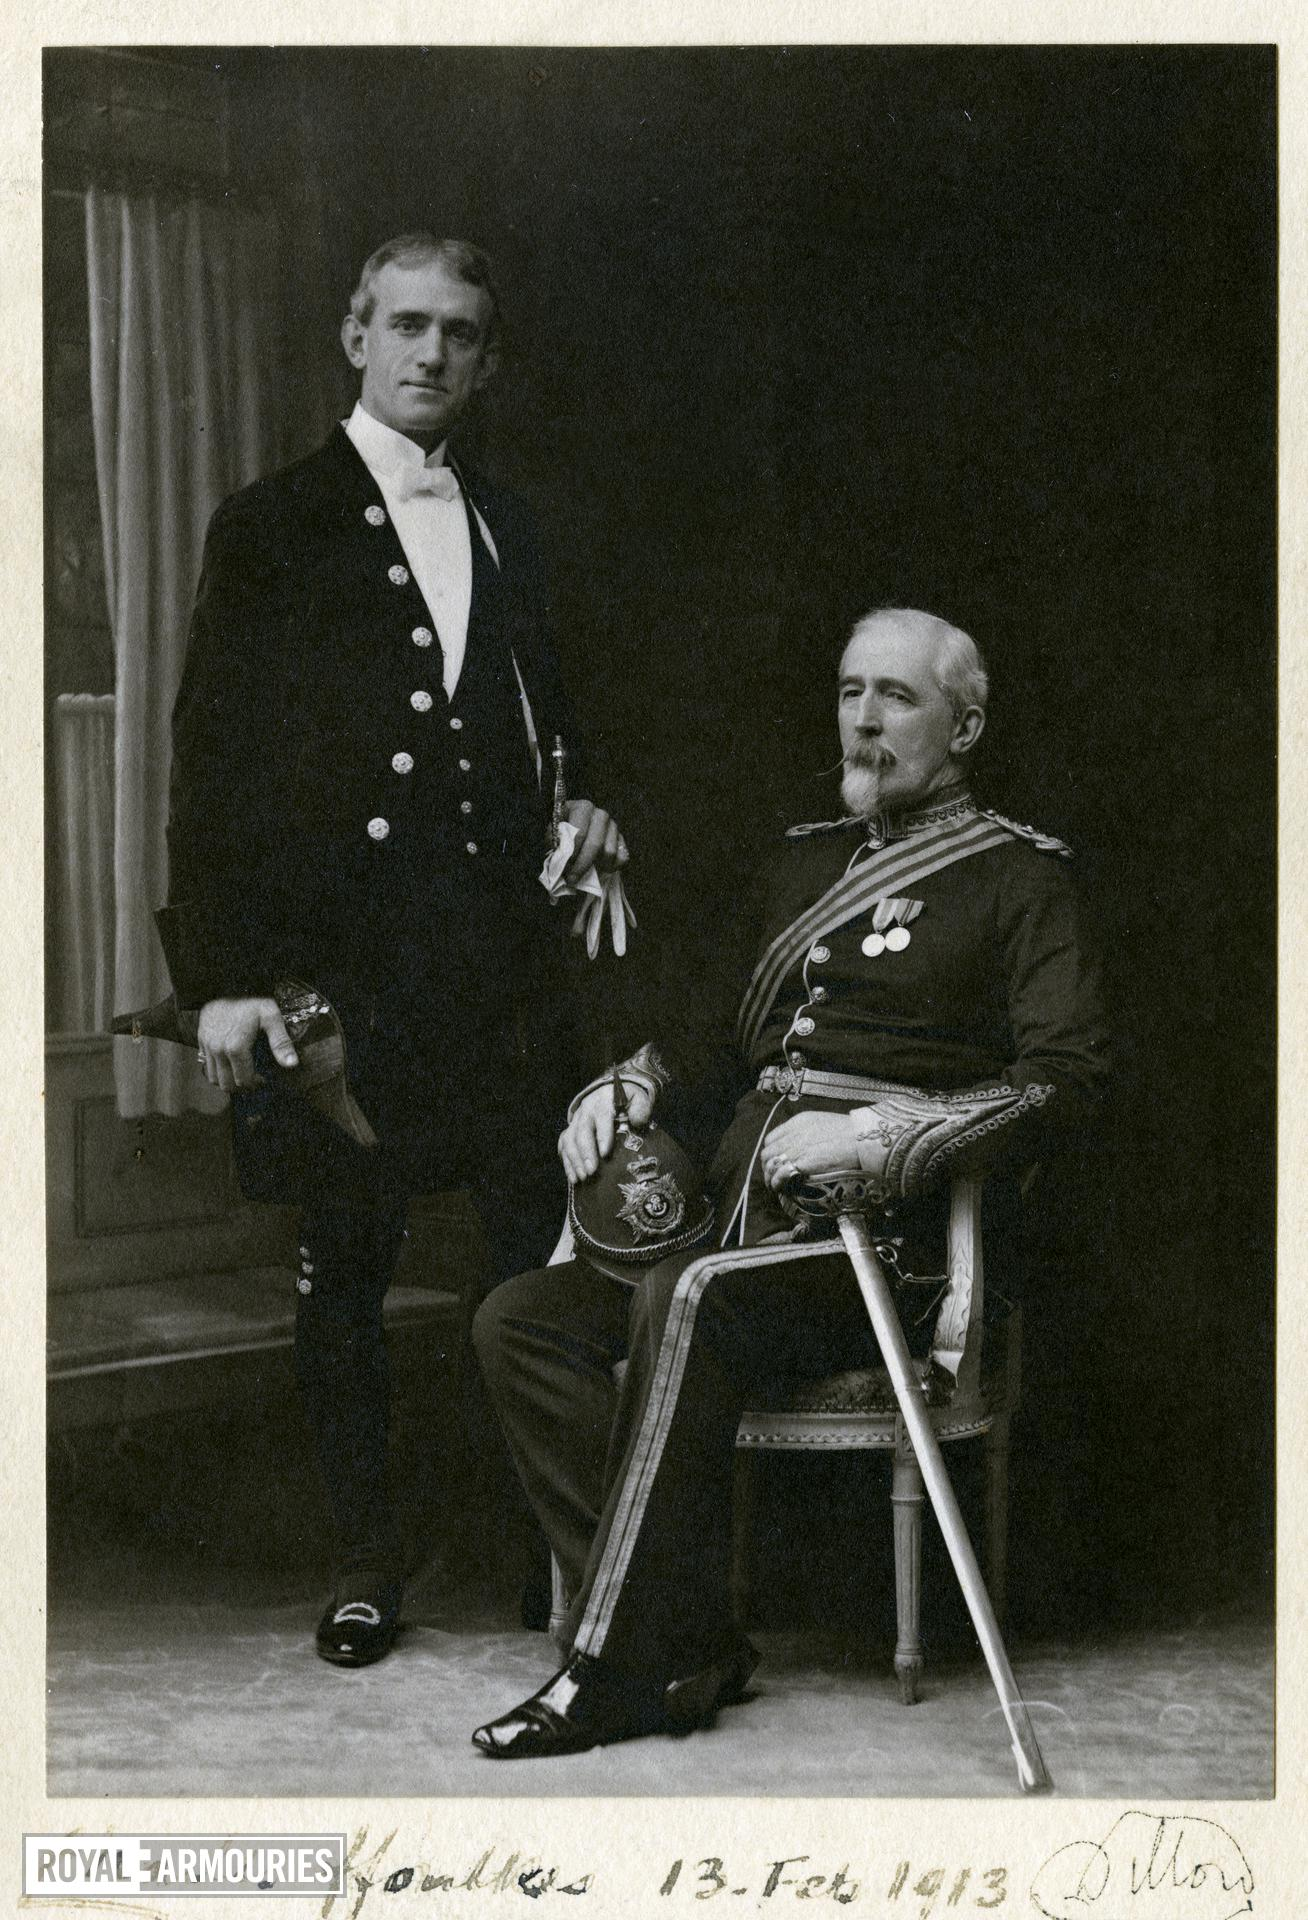 Charles ffoulkes (standing), Curator of the Armouries at the Tower of London, with his predecessor Viscount Lord Dillon in 1913.